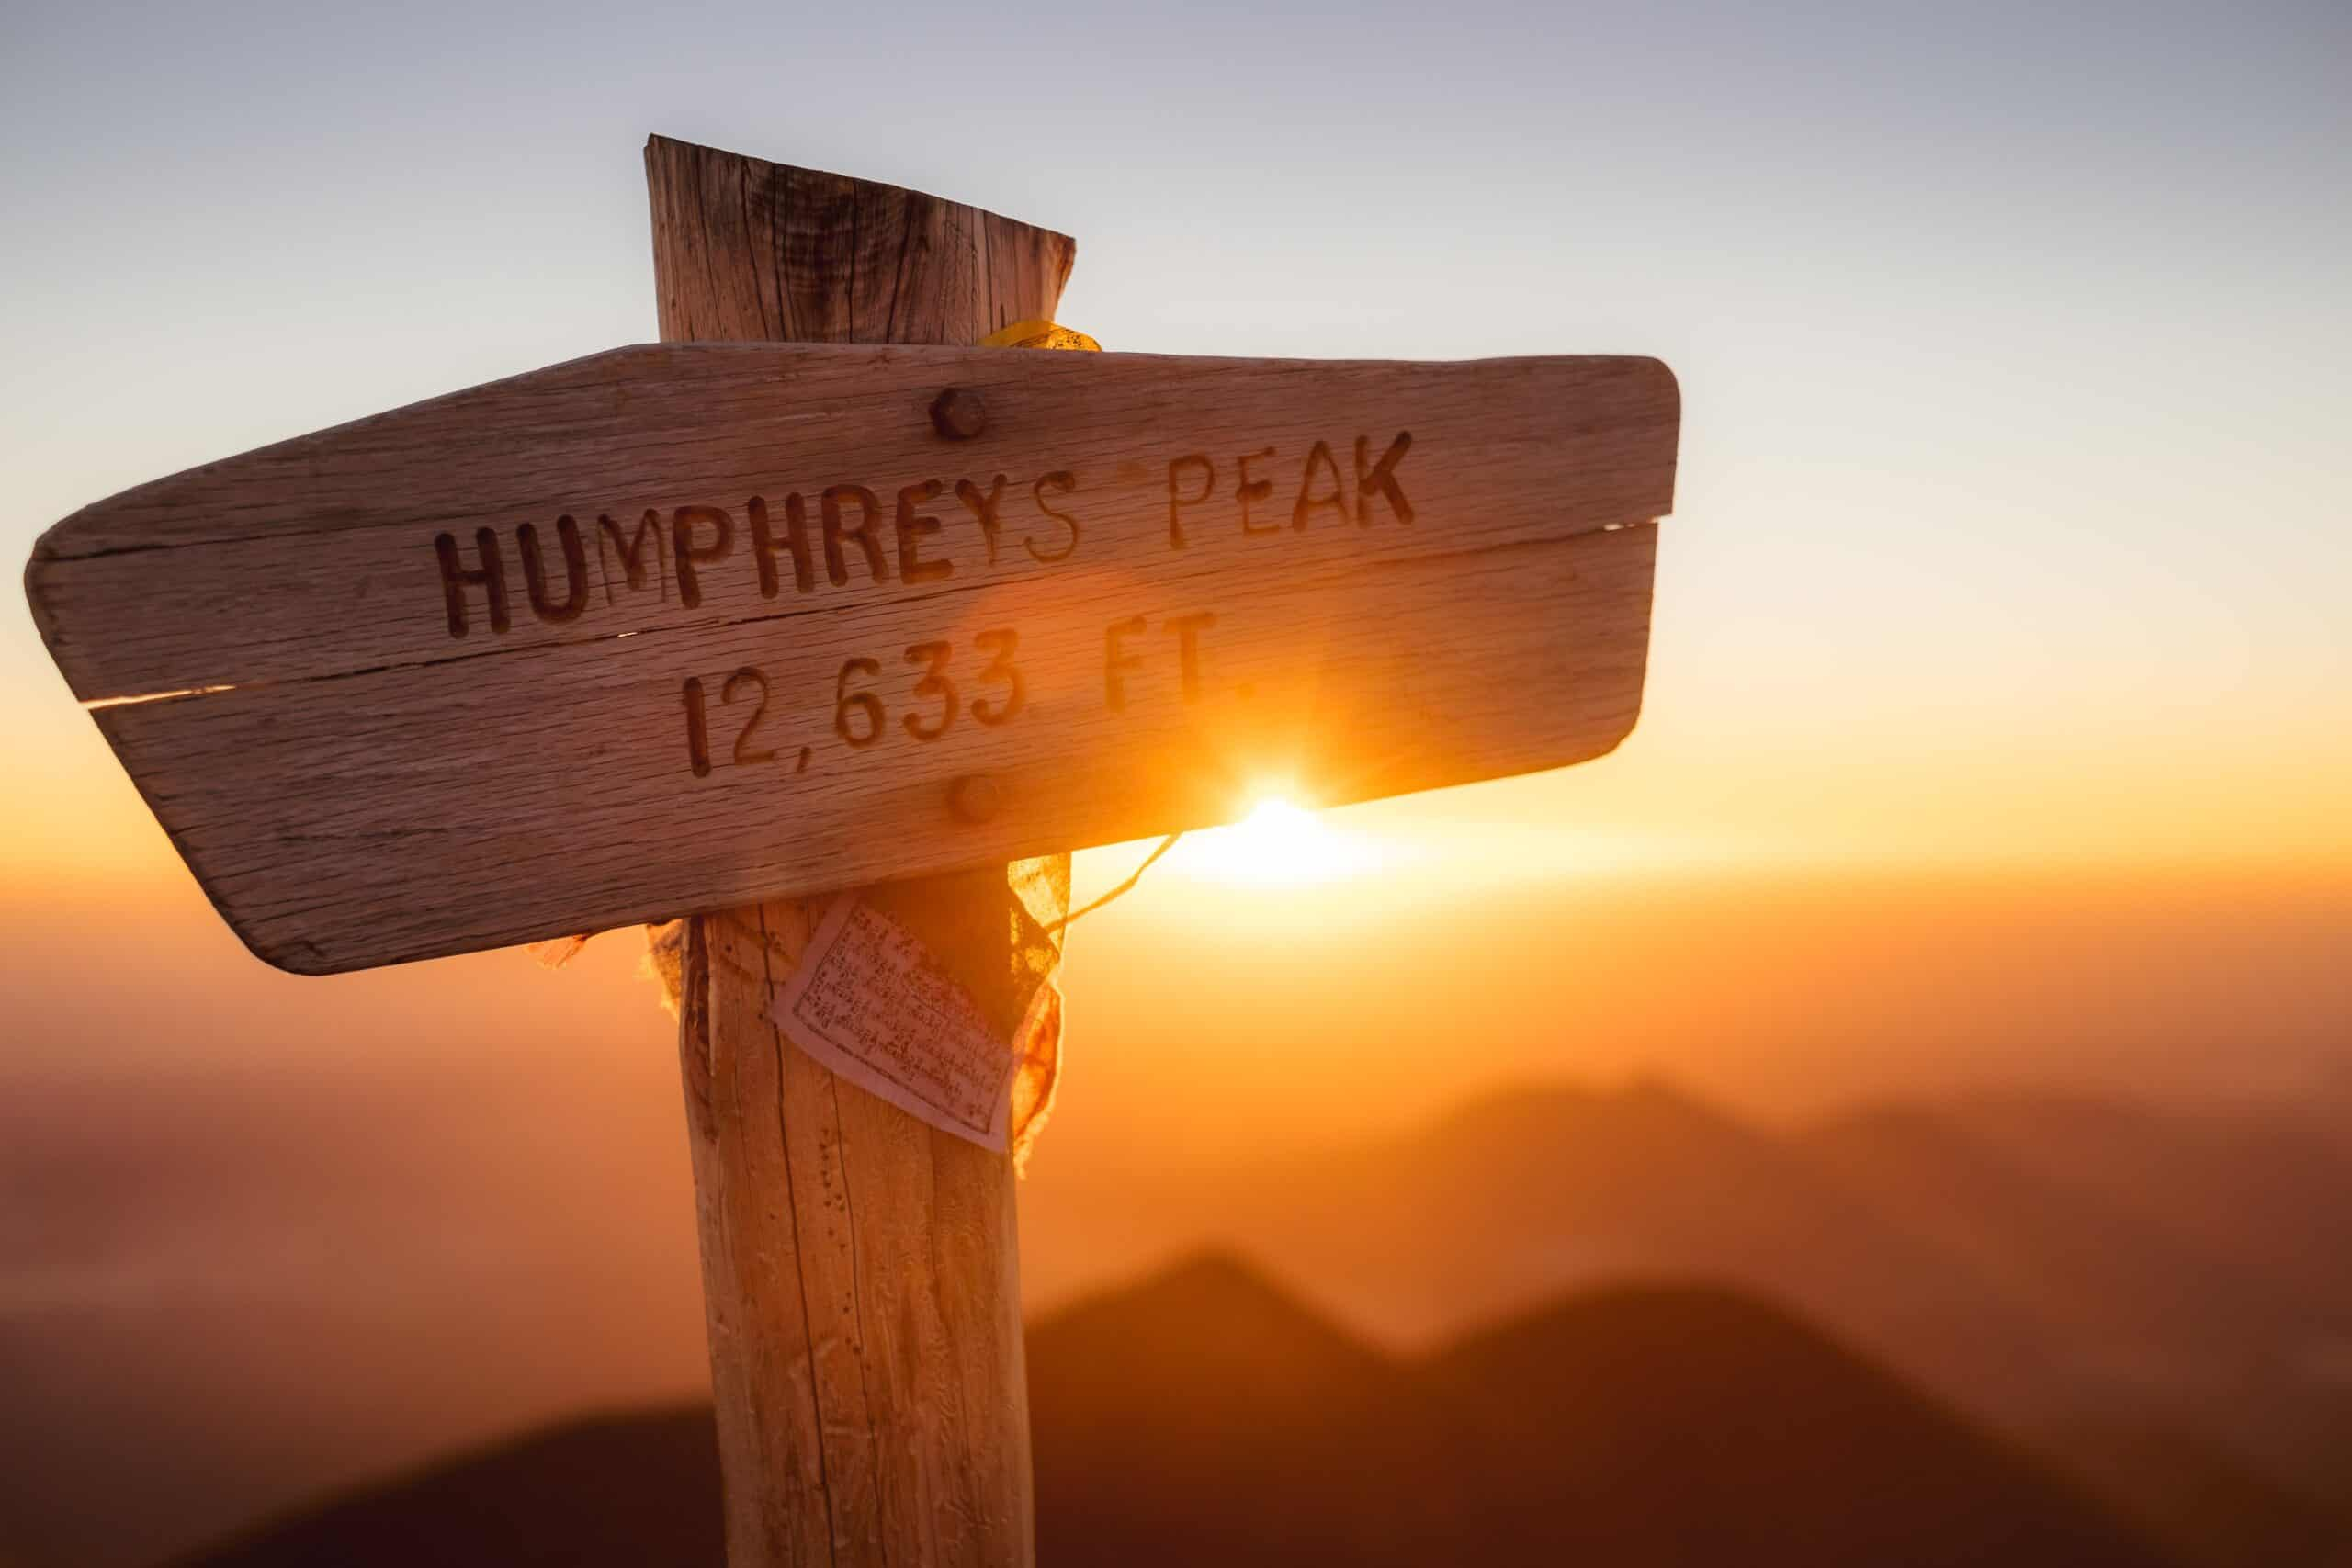 Humphreys peak hiking sunset sign